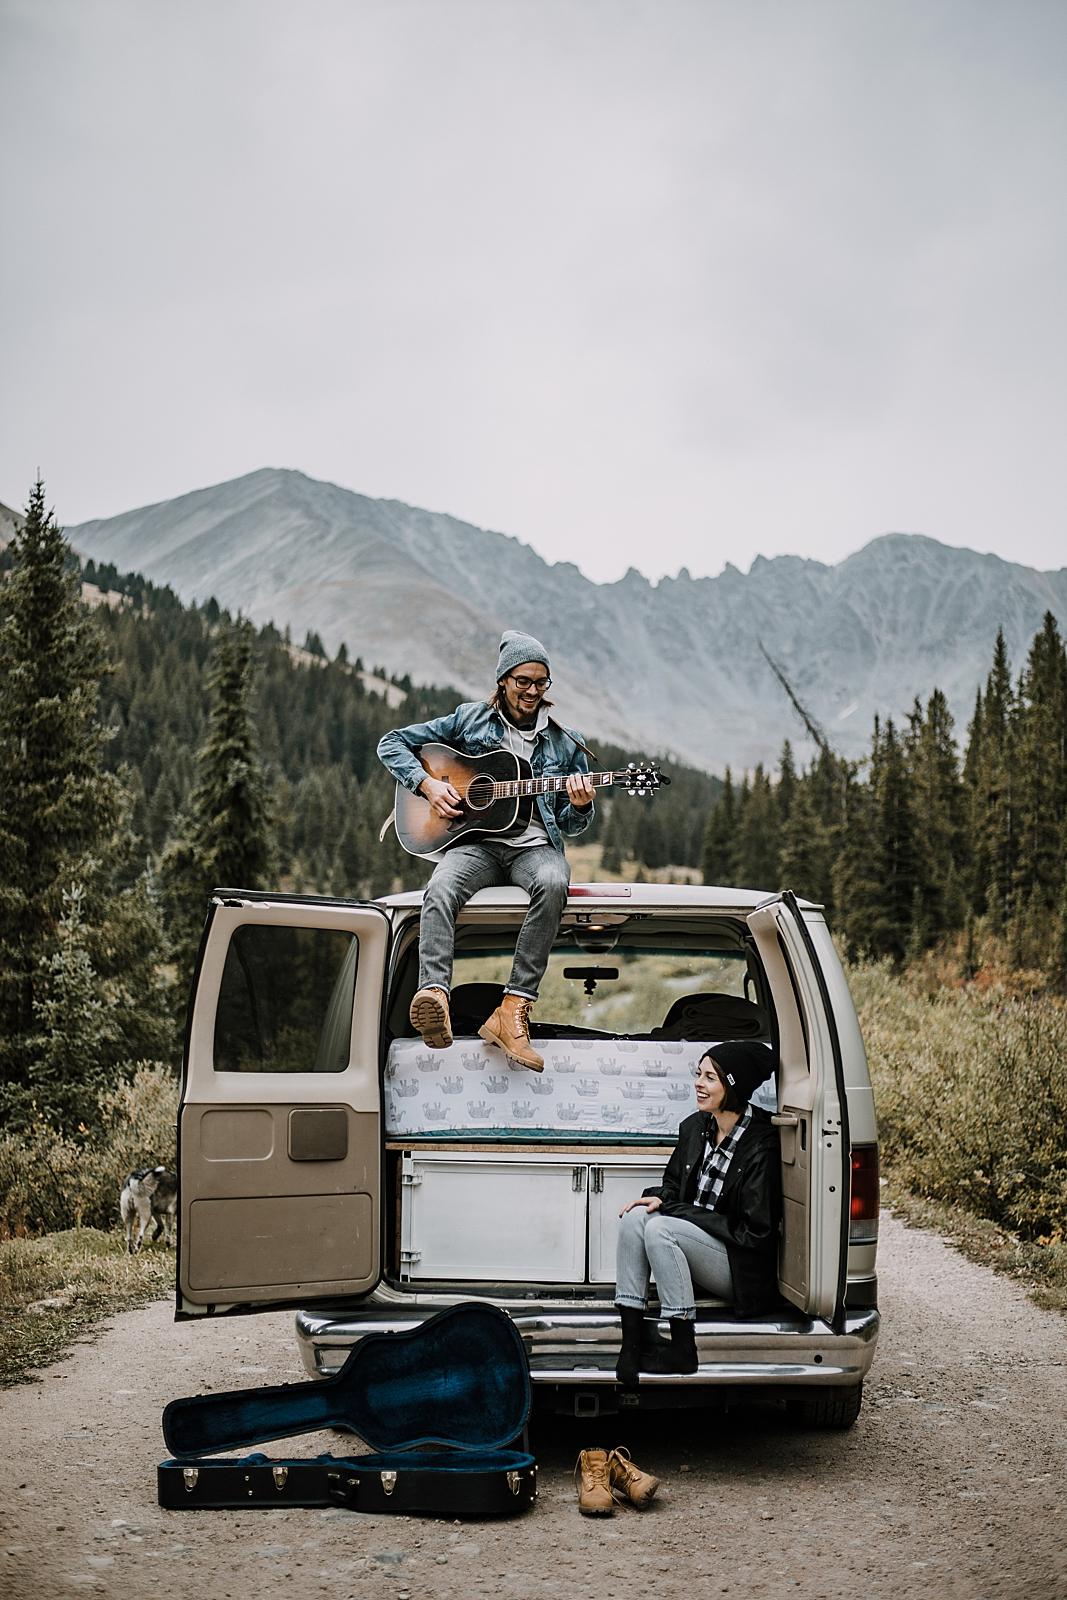 couple living out of a van, van life, home is where you park it, hiking mayflower gulch, mayflower gulch elopement, mayflower gulch wedding, colorado 14er, colorado fourteener, leadville elopement